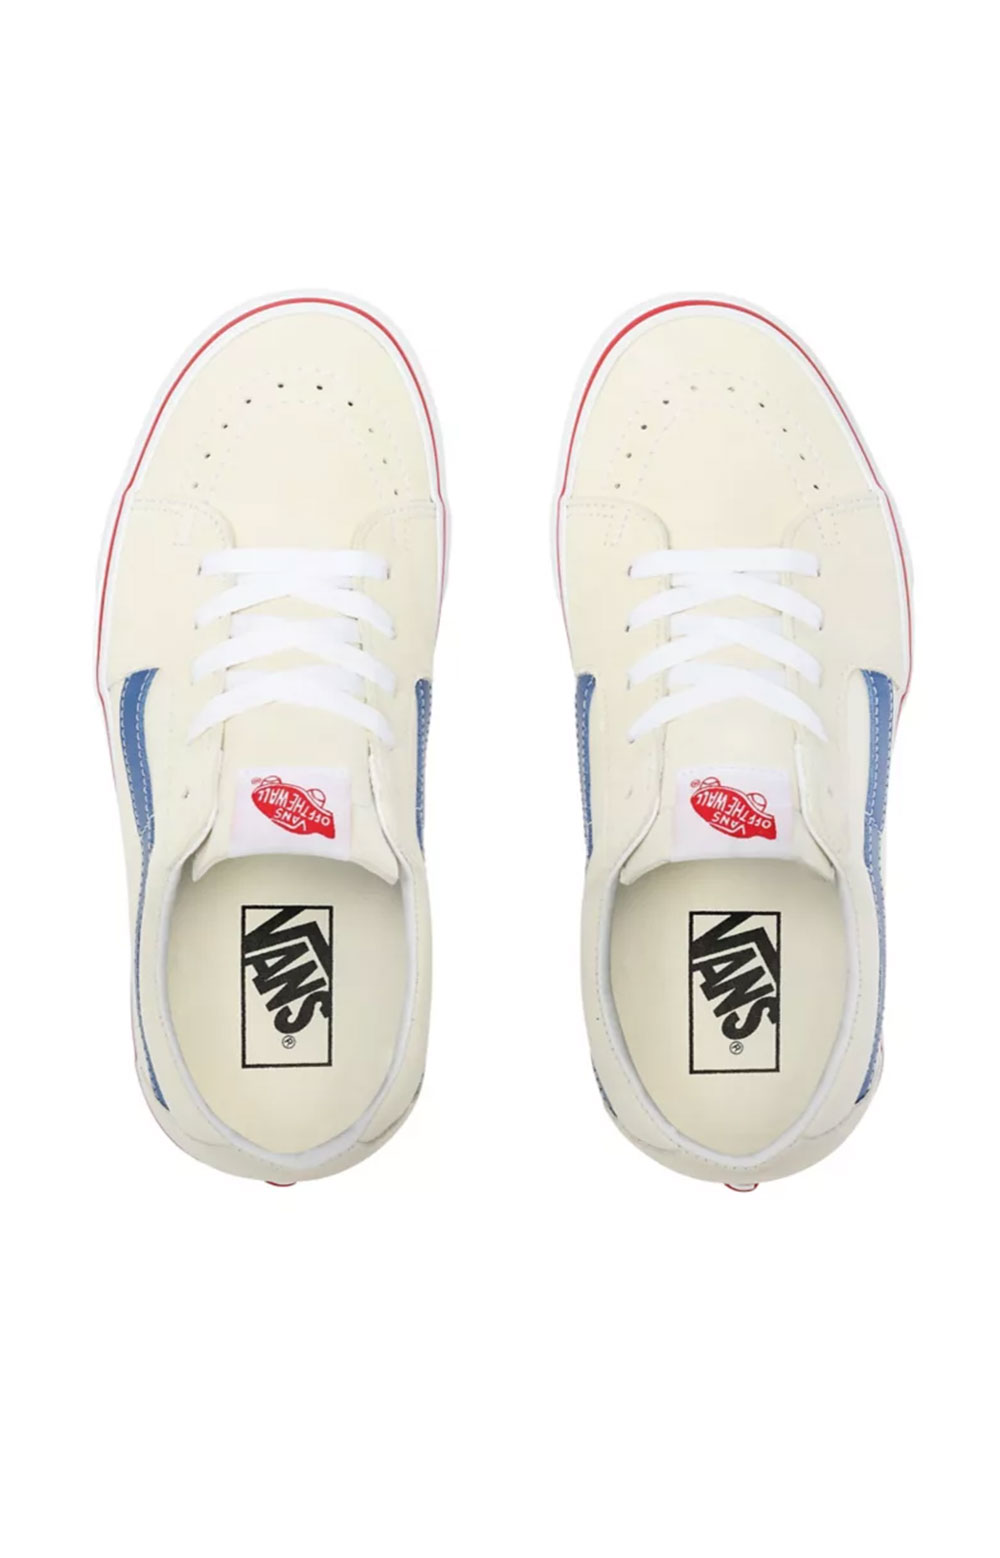 (UUK24I) Sk8-Low Shoes - Classic White/Navy 2